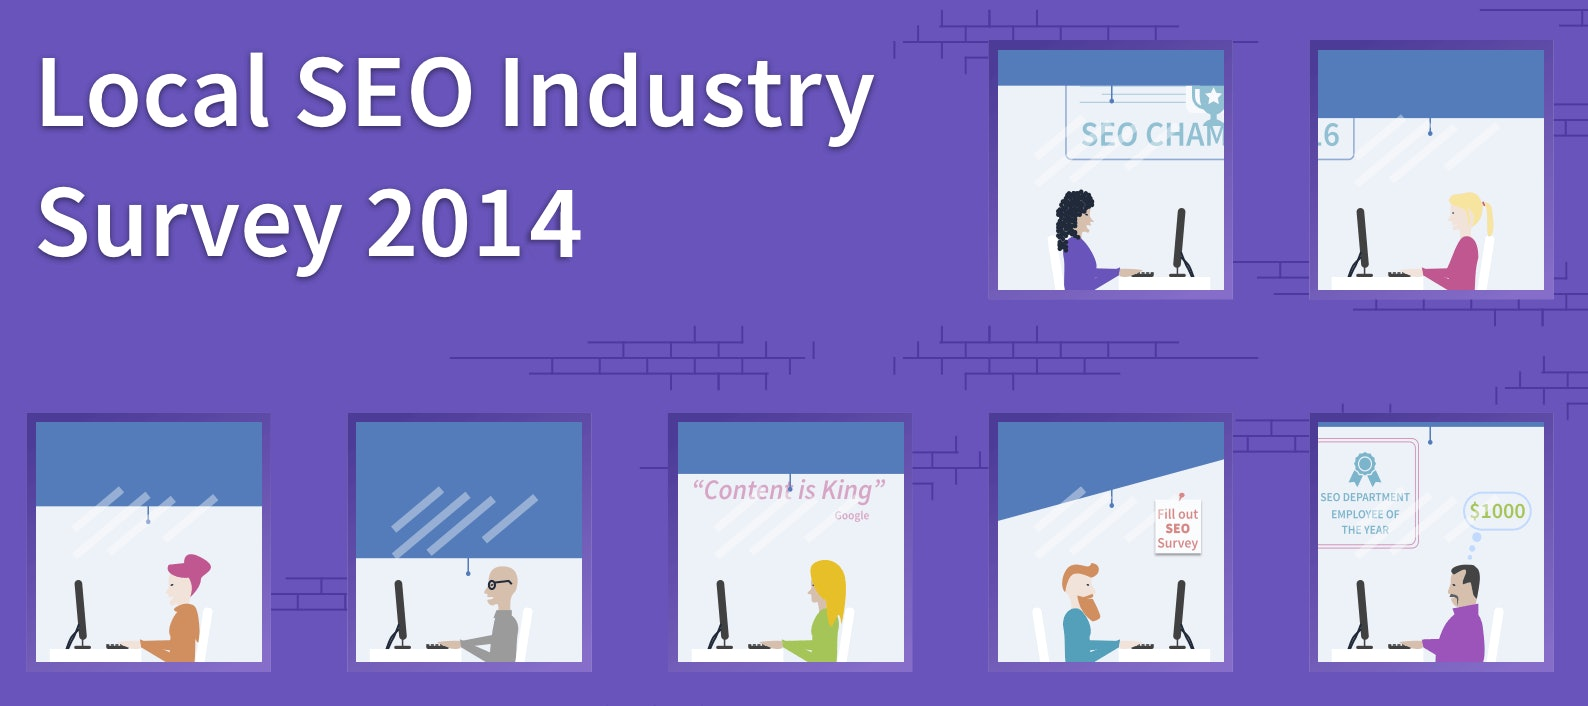 Local SEO Industry Survey 2014